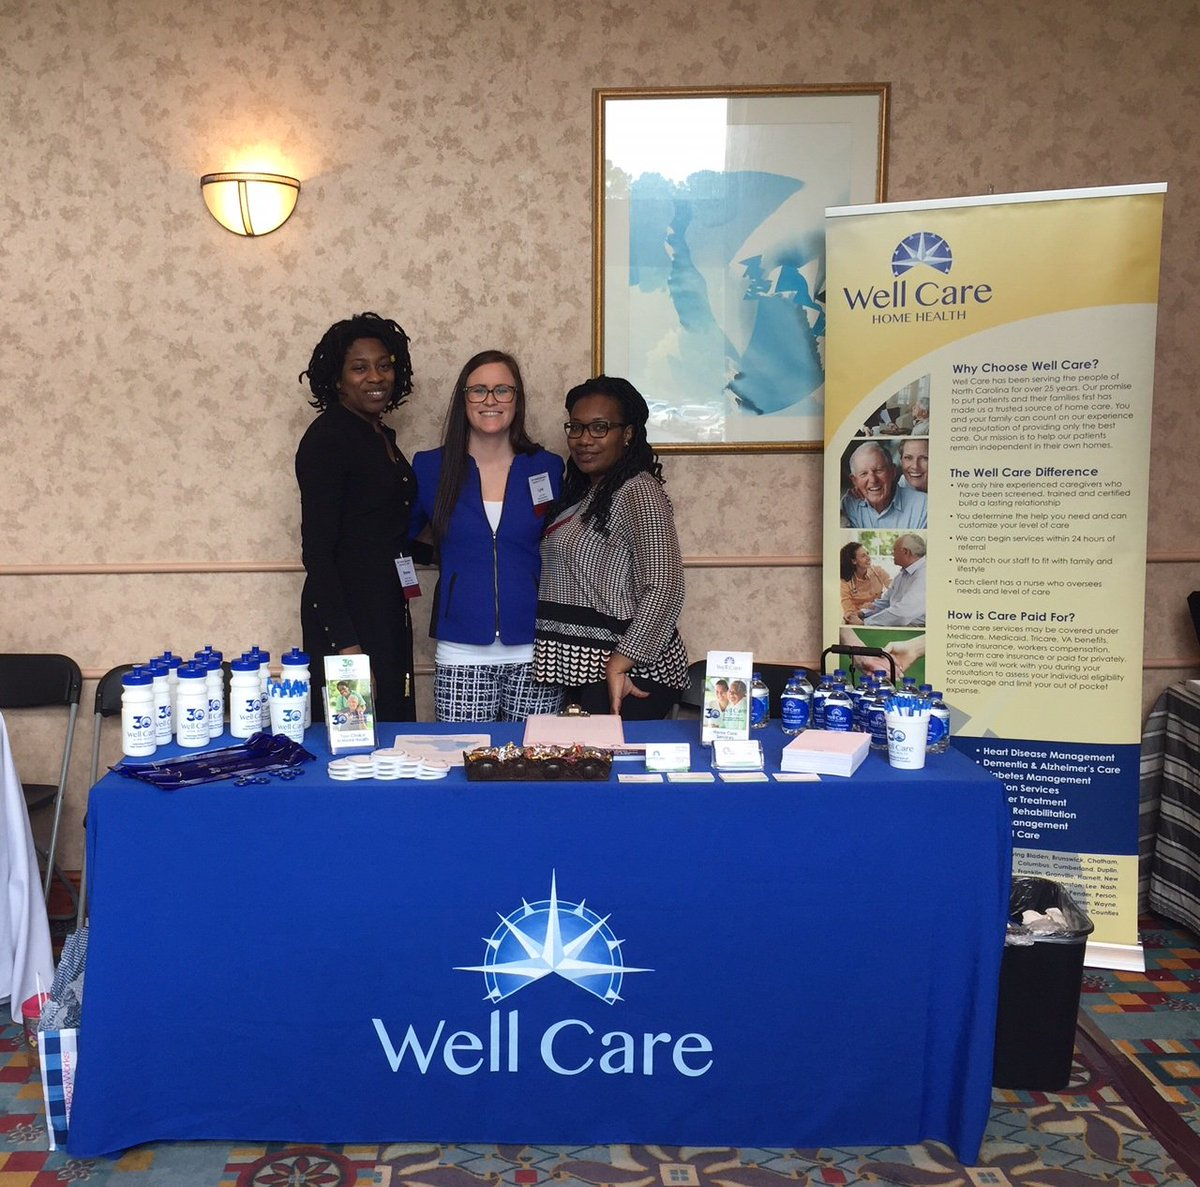 Well Care Health on Twitter: